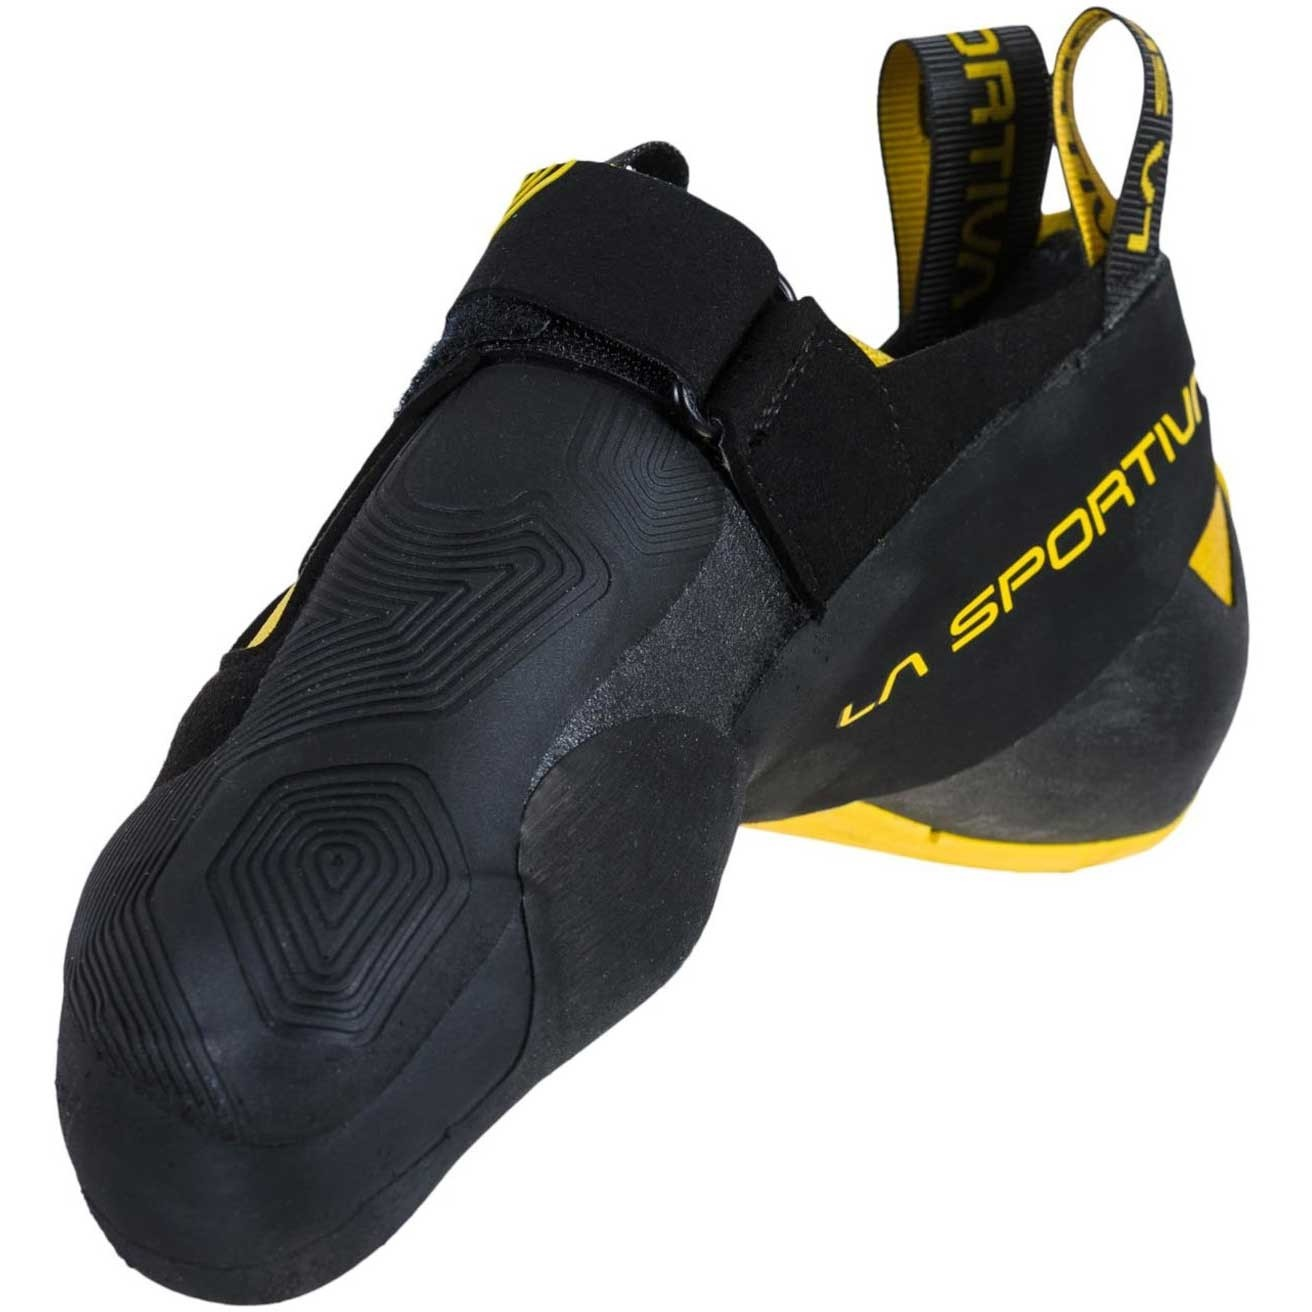 La Sportiva Theory Climbing Shoe - Men's - Black/Yellow